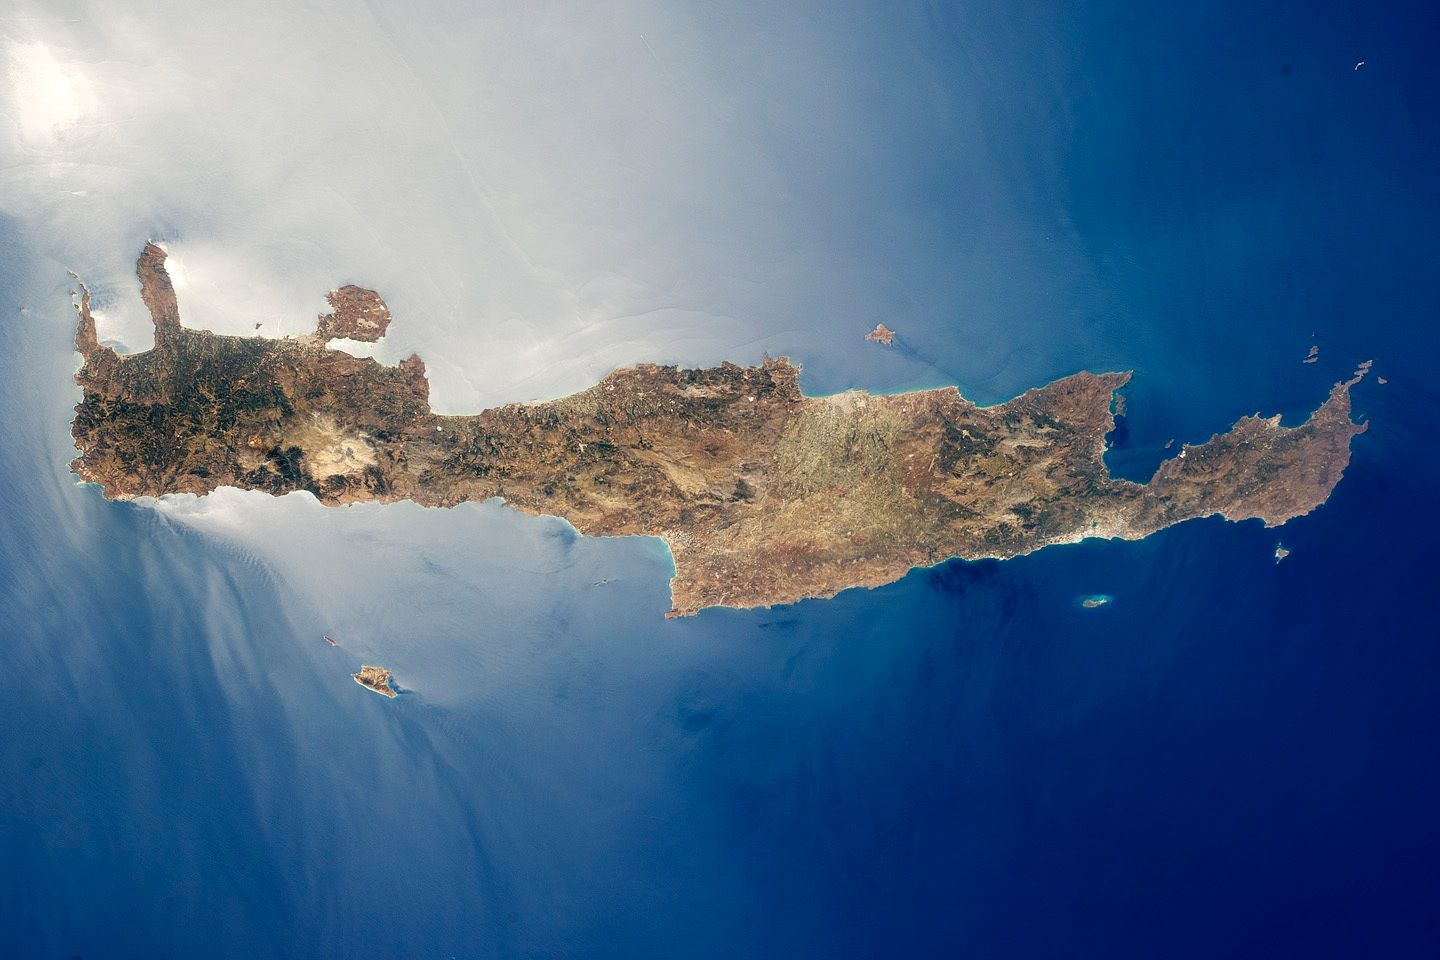 Anthropologist suggests Mediterranean islands inhabited much earlier than thought